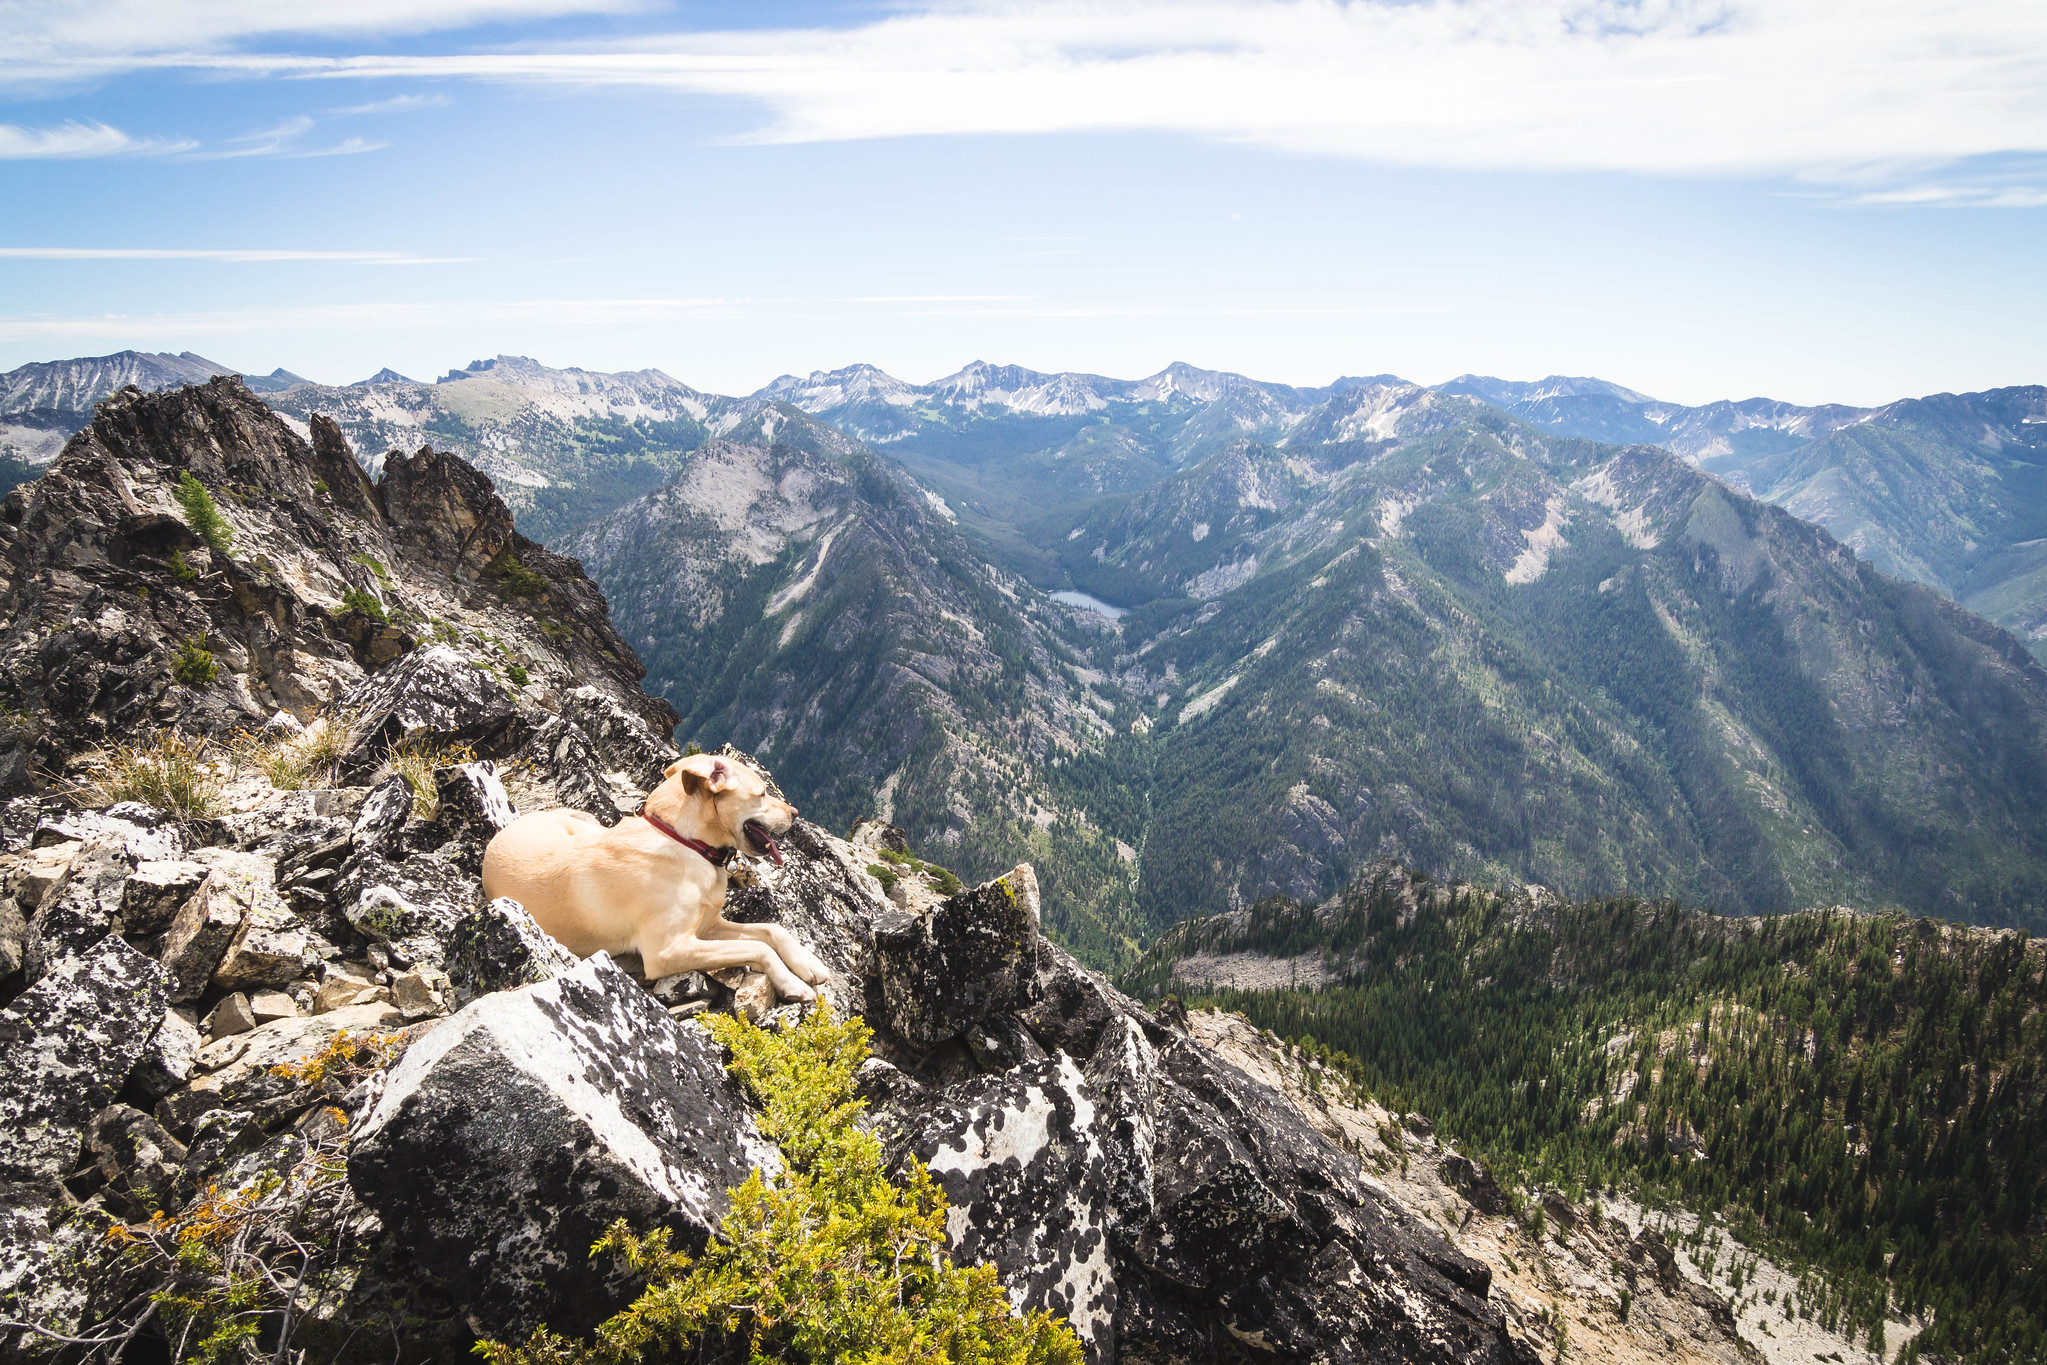 Summit dogs on Finney Peak